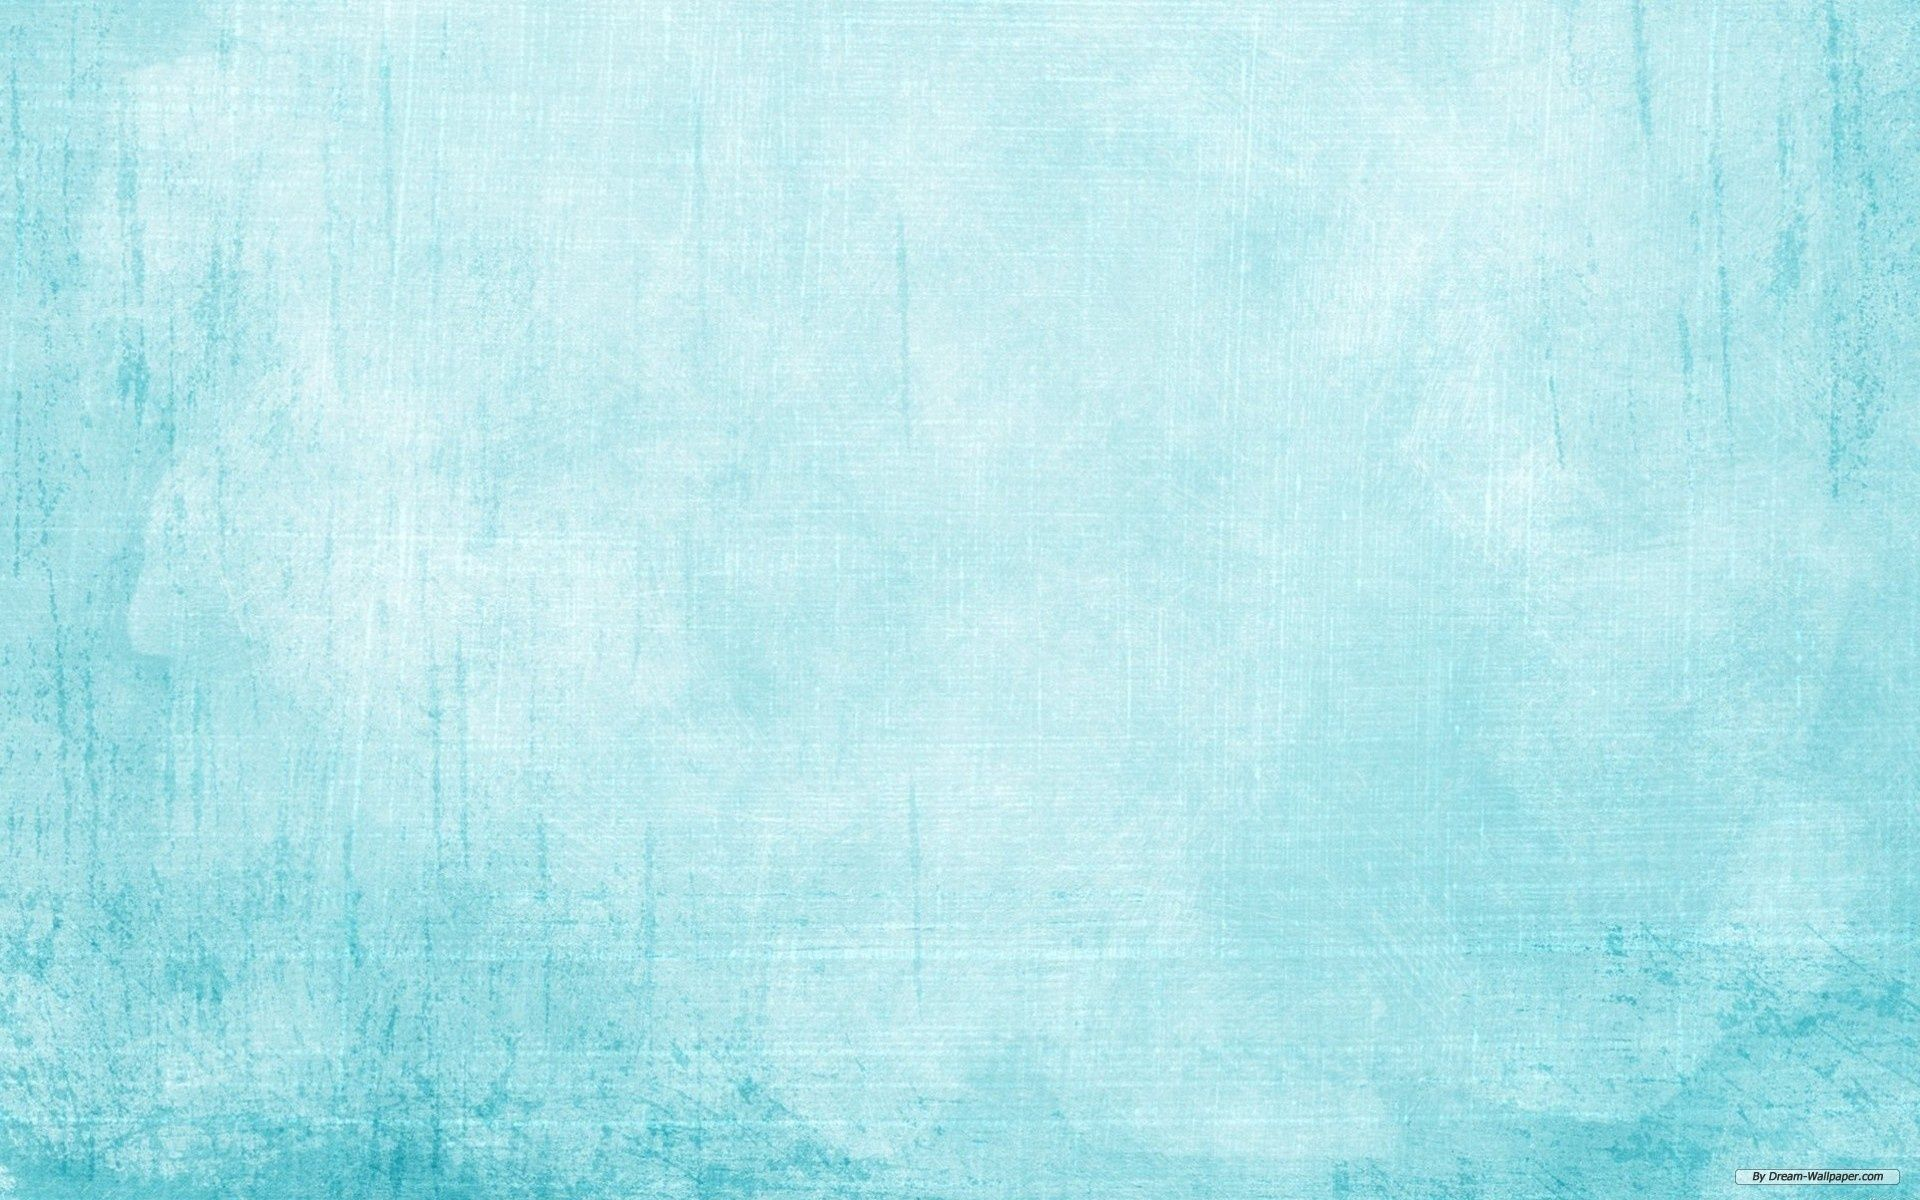 30 Free Ice Texture Backgrounds For Web Designers Tech